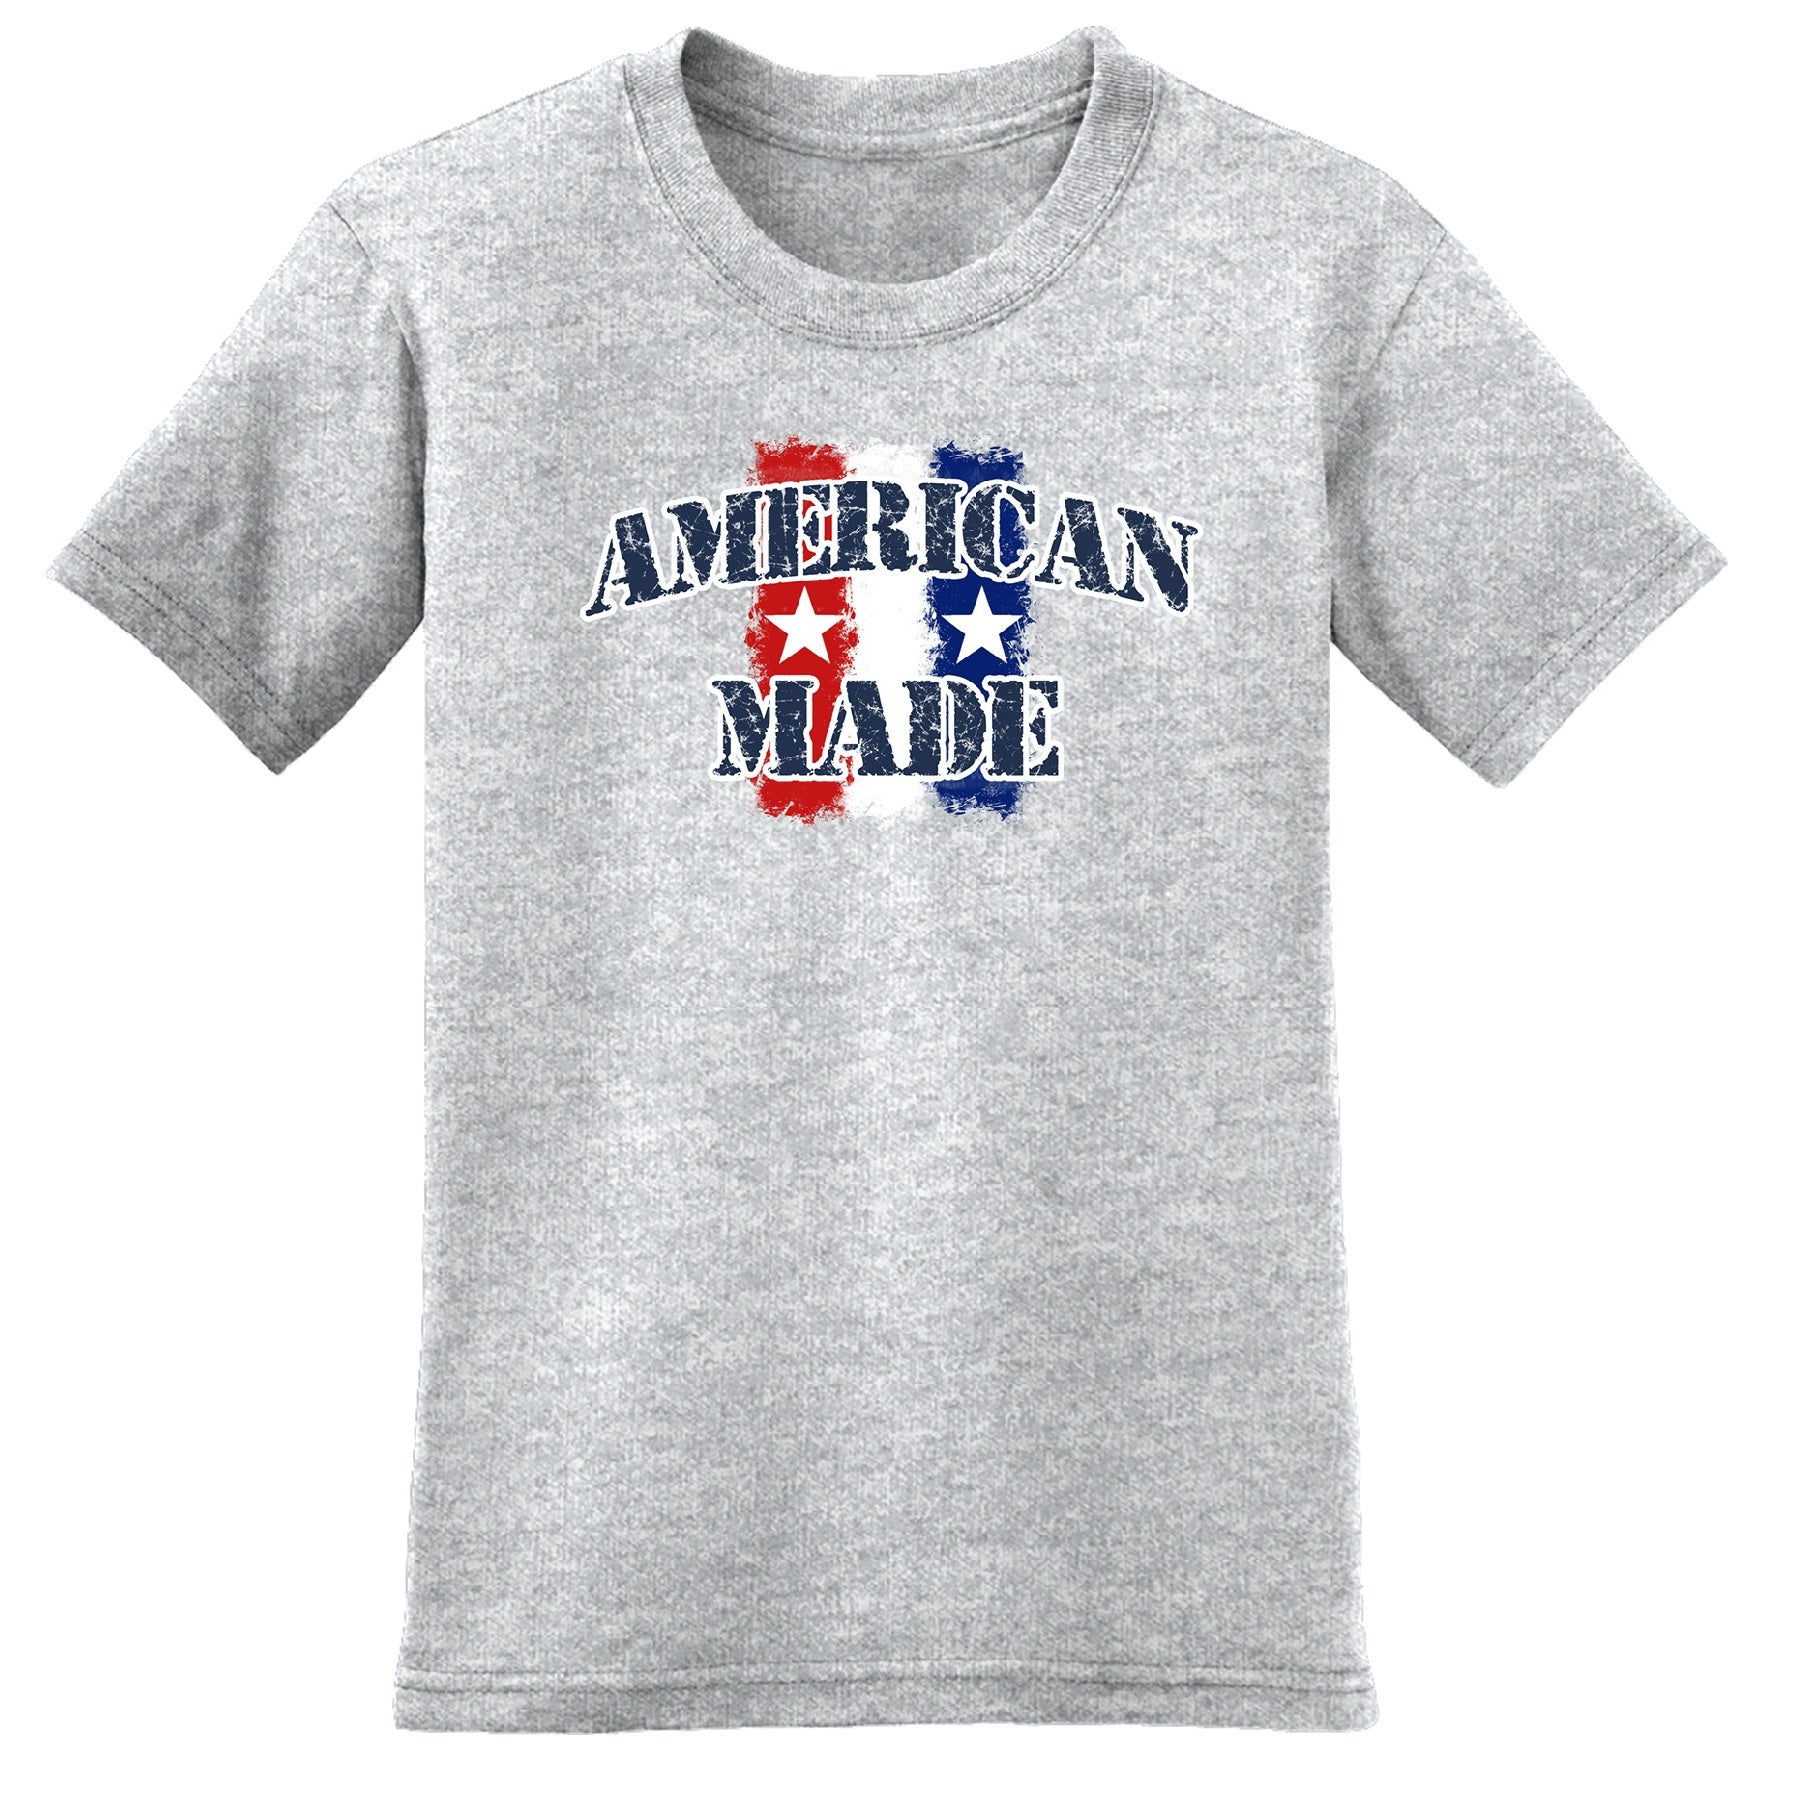 American Made Men's Simply Patriotic T-Shirt - theflagshirt